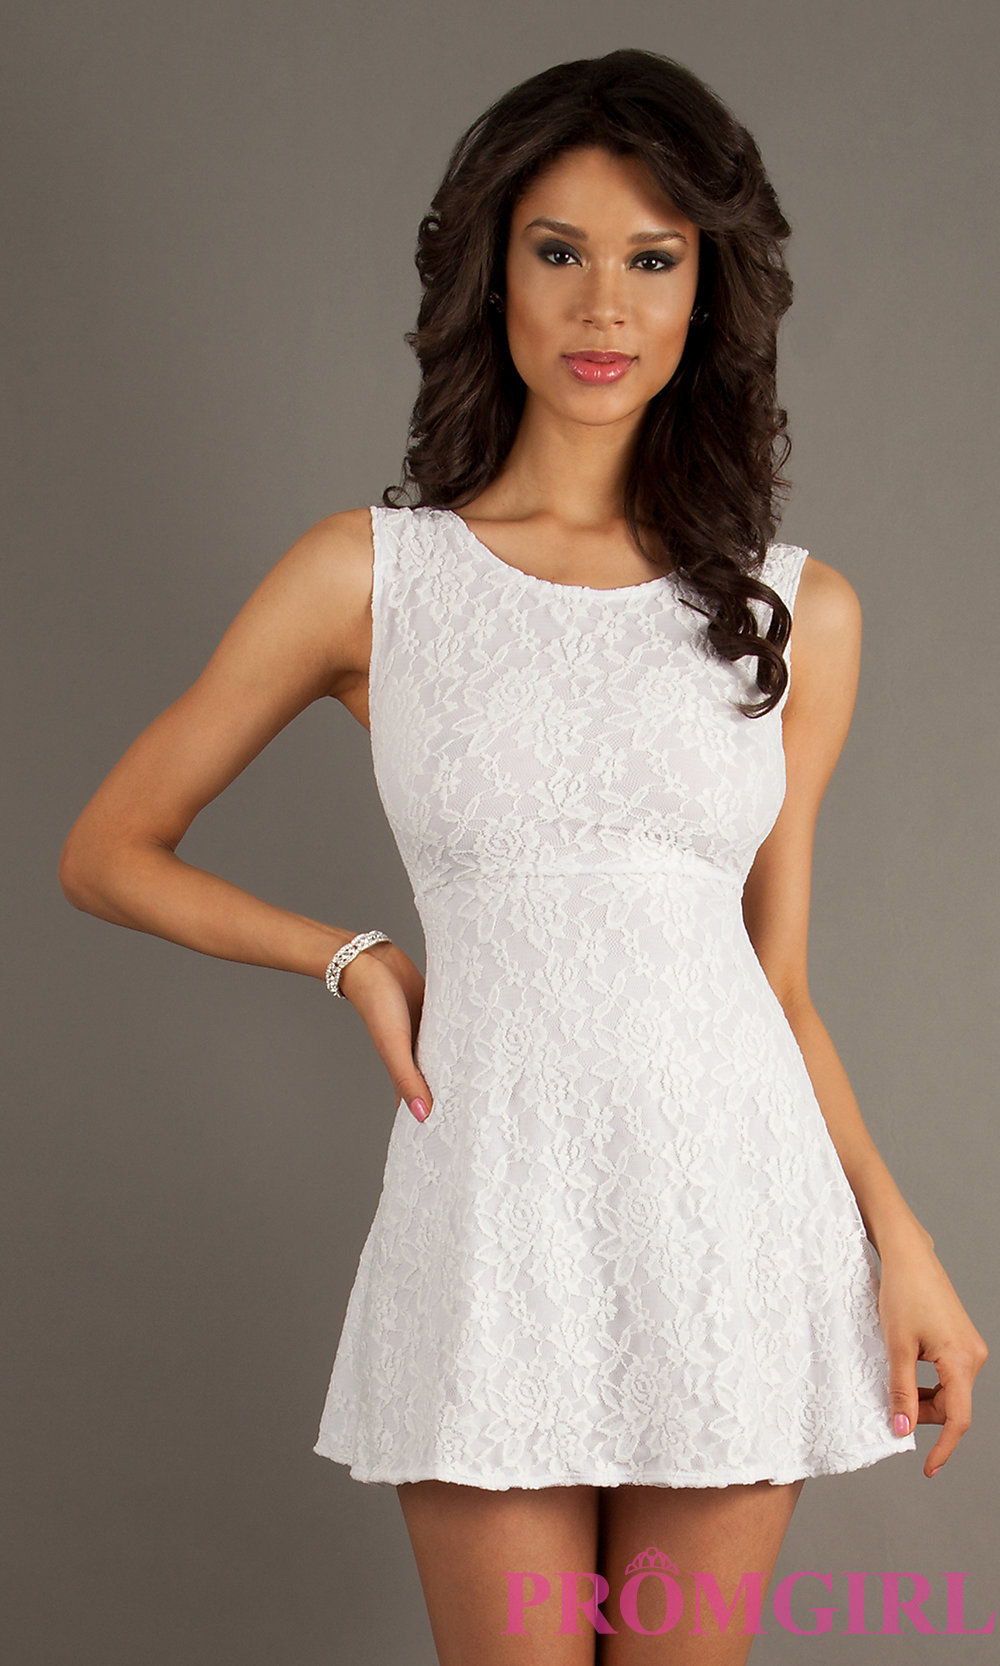 Where To Buy White Lace Dress : Help You Stand Out - Dresses Ask